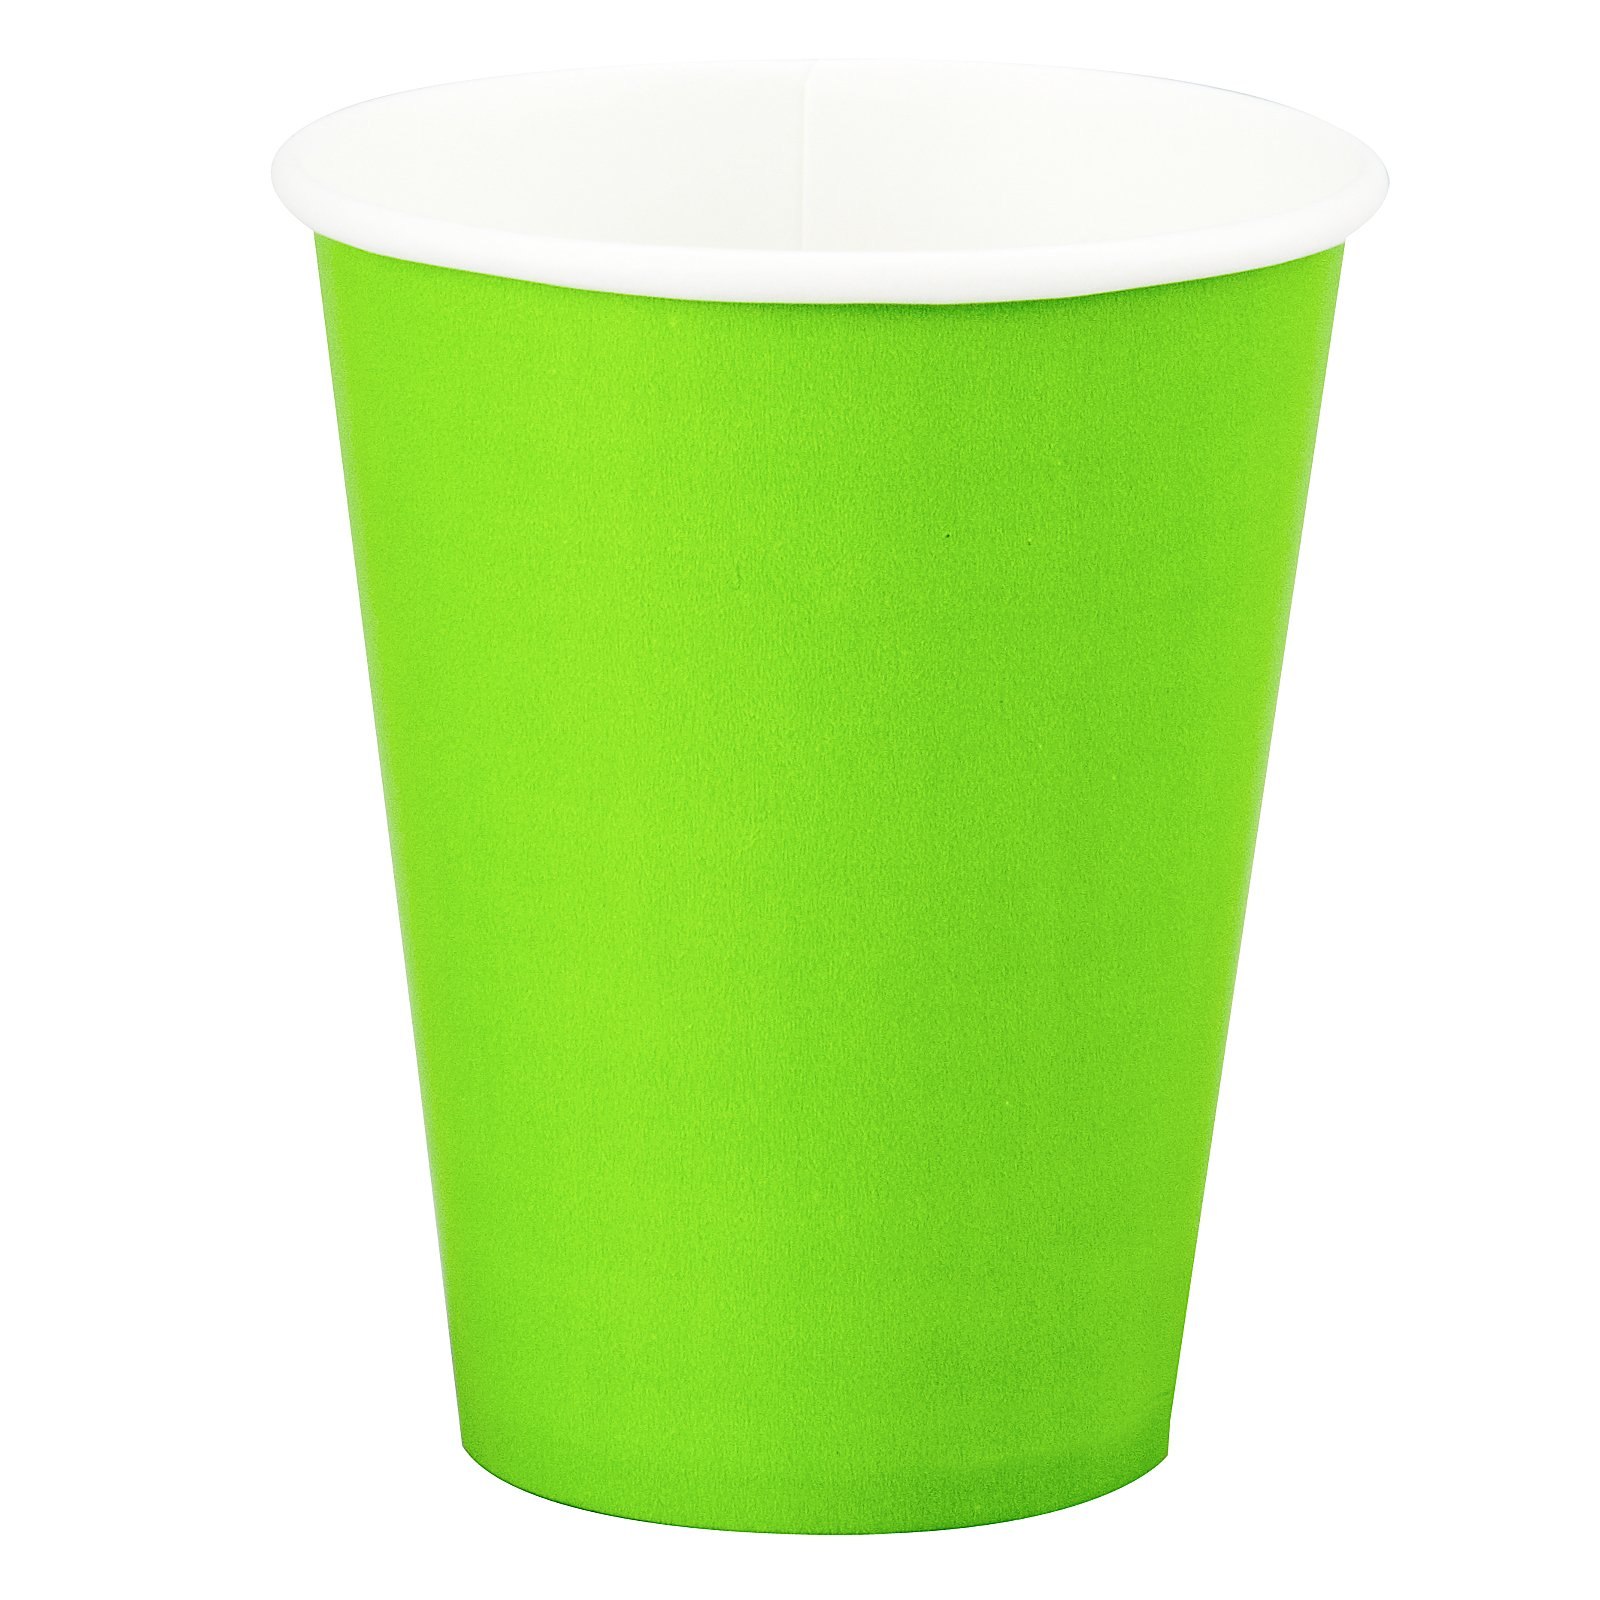 Fresh Lime (Lime Green) 9 oz. Paper Cups (24 count)